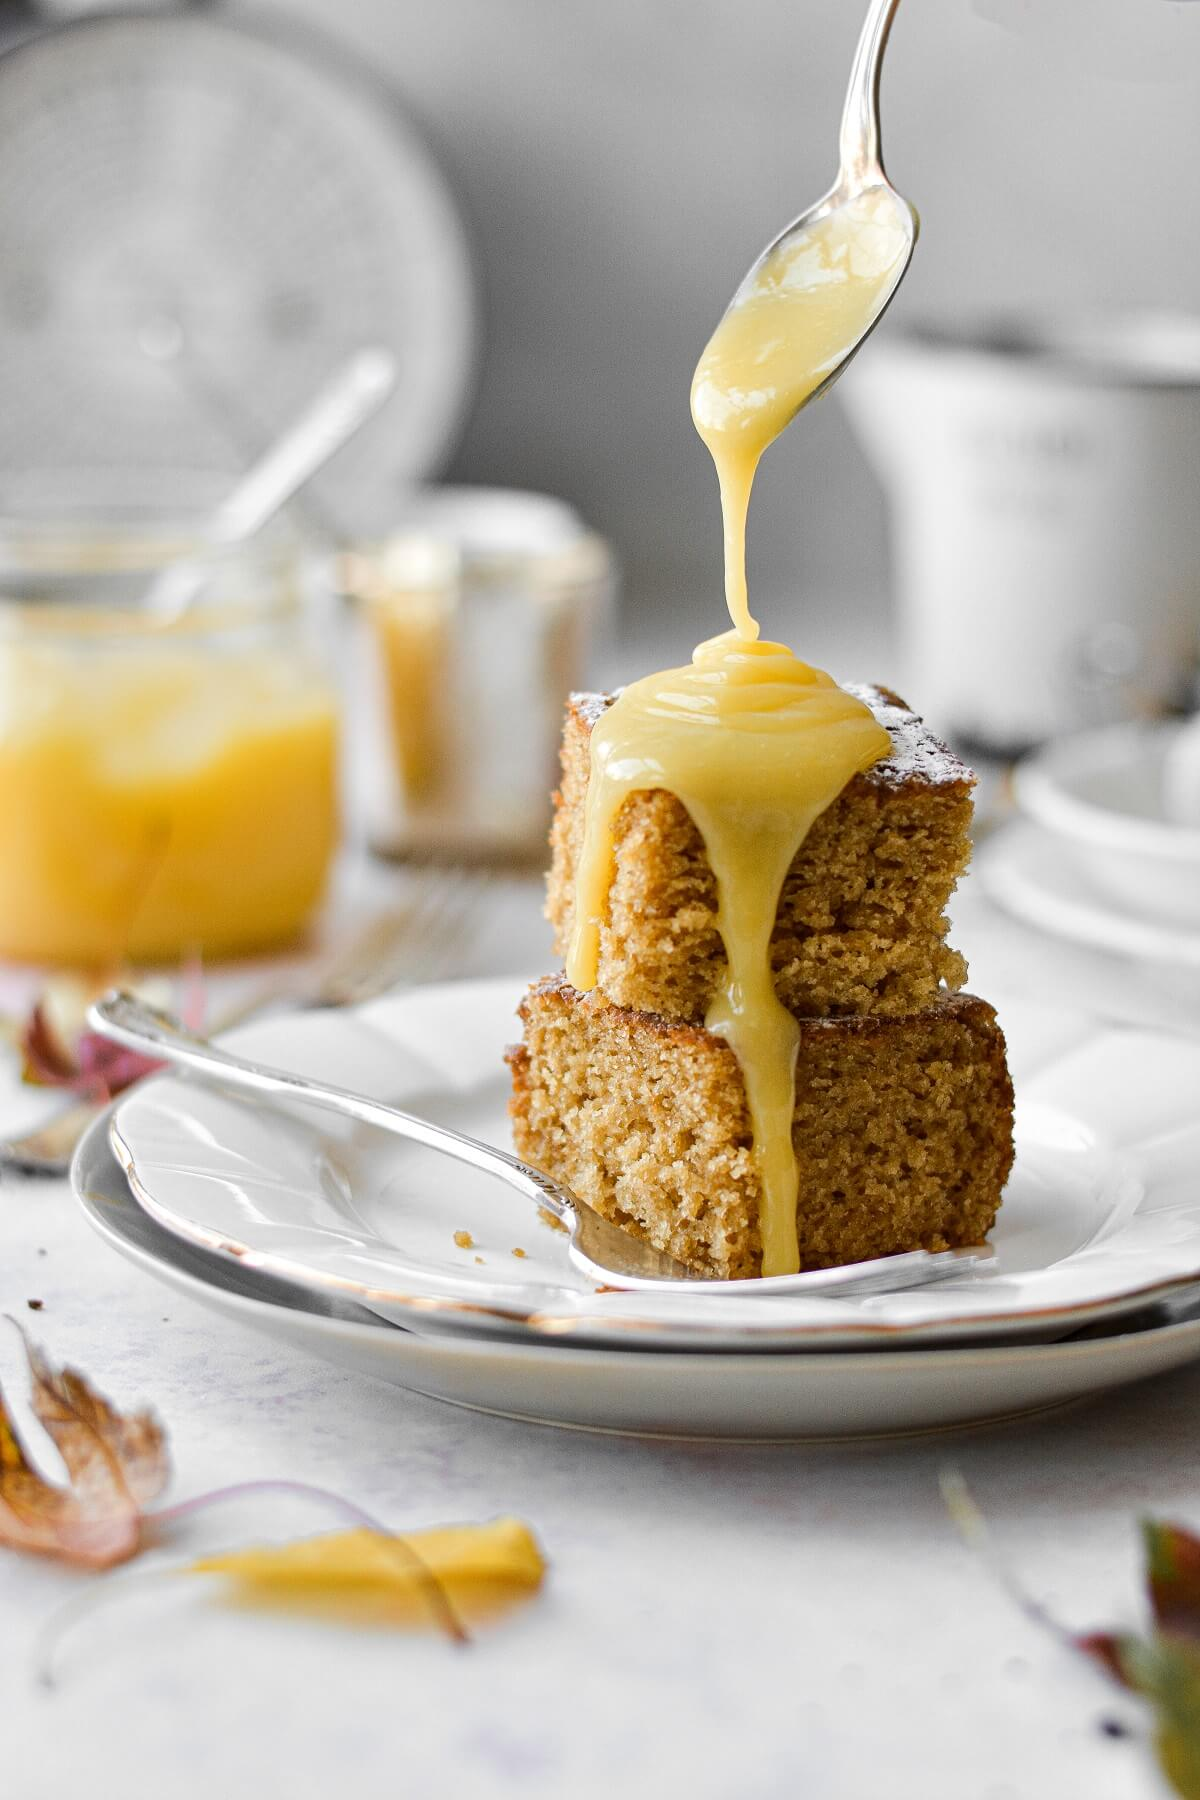 Lemon curd poured over pieces of cardamom ginger cake.